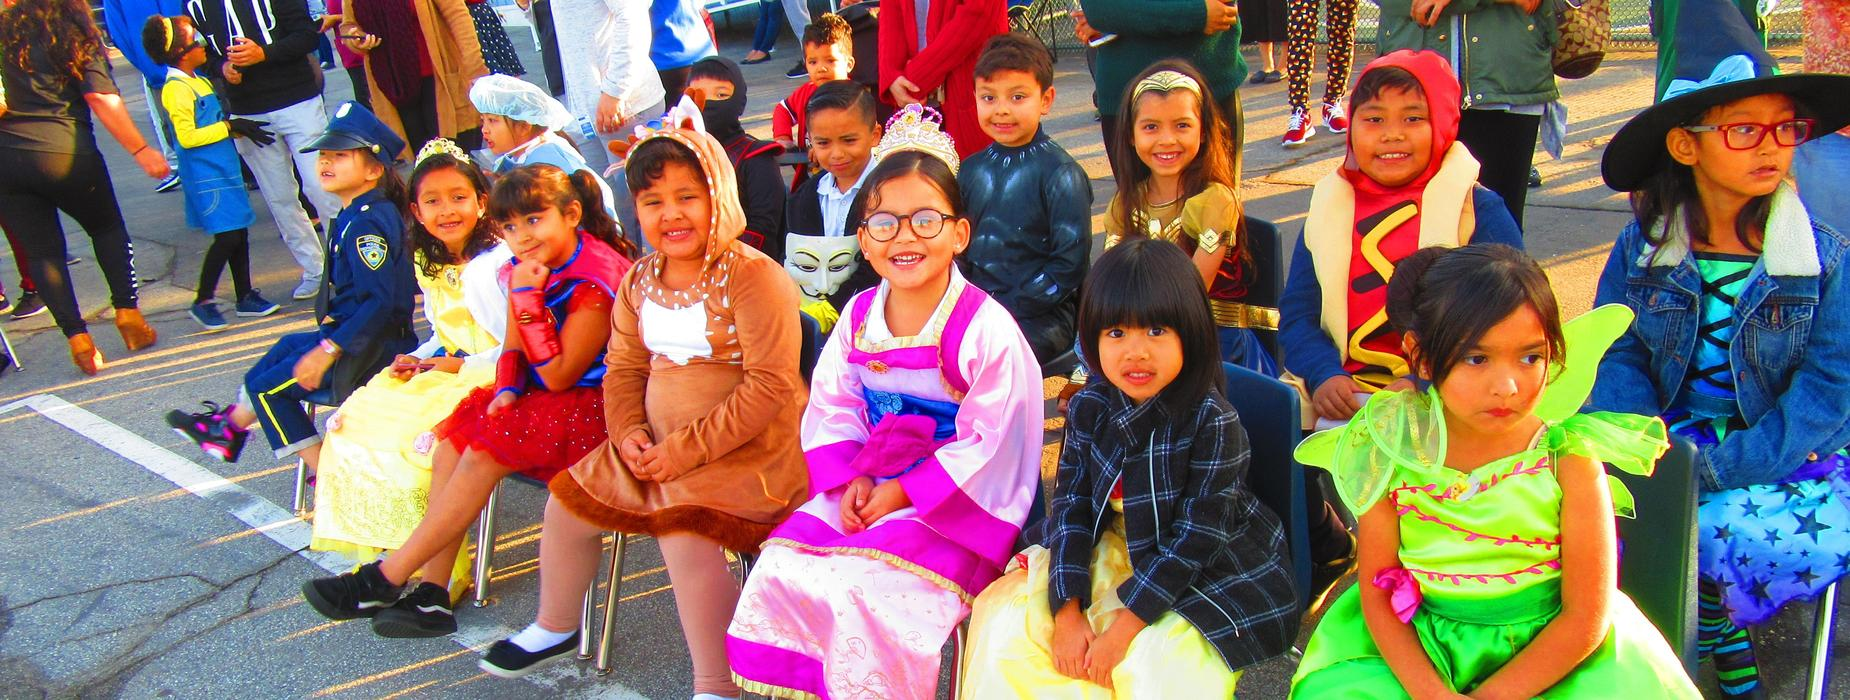 Northrup Students during the Halloween Event